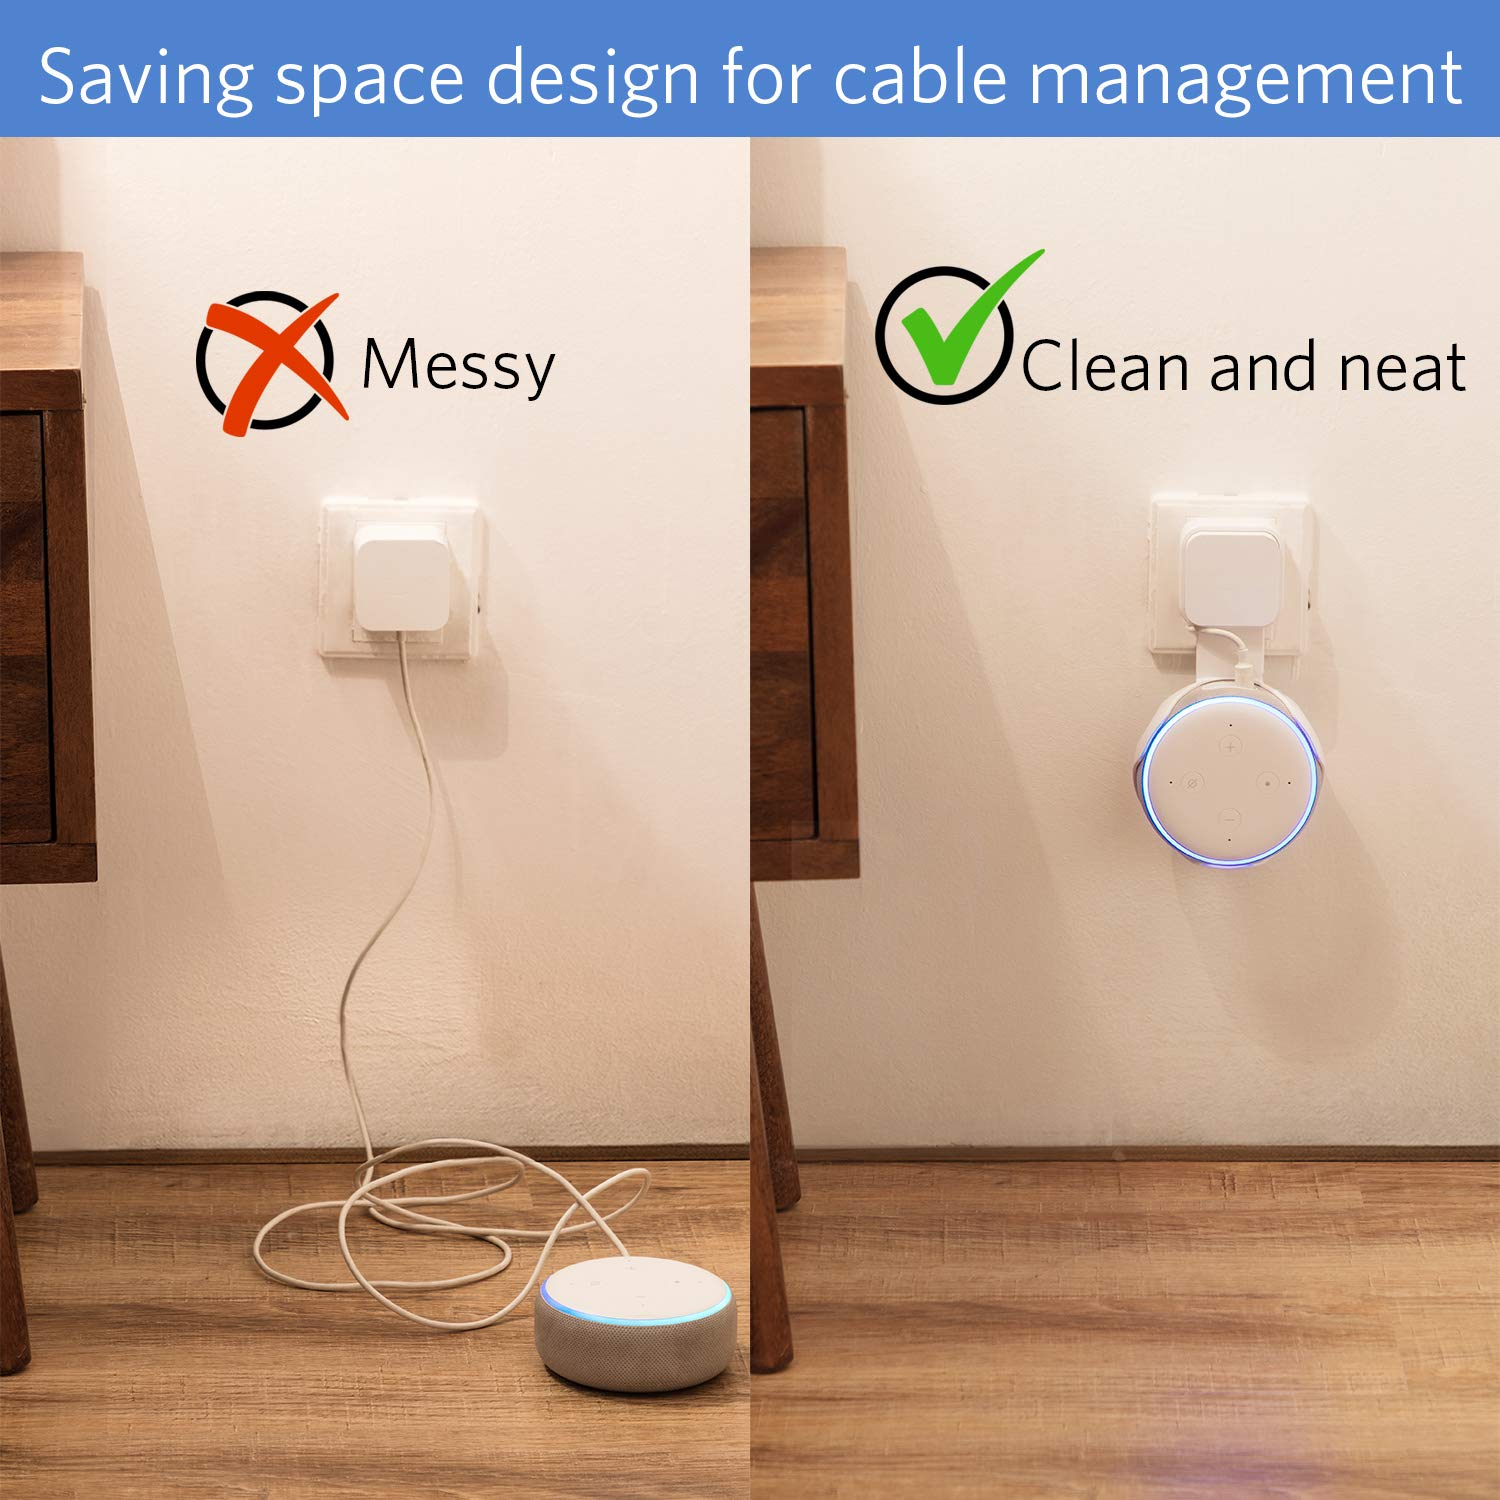 No Messy Wires or Screws-Compact Bracket Case Plug in Bedroom Kitchen Bathroom Frienda Outlet Wall Mount Hanger Holder Stand for Dot 3rd Generation Smart Home Voice Assistants 2 Pack Black